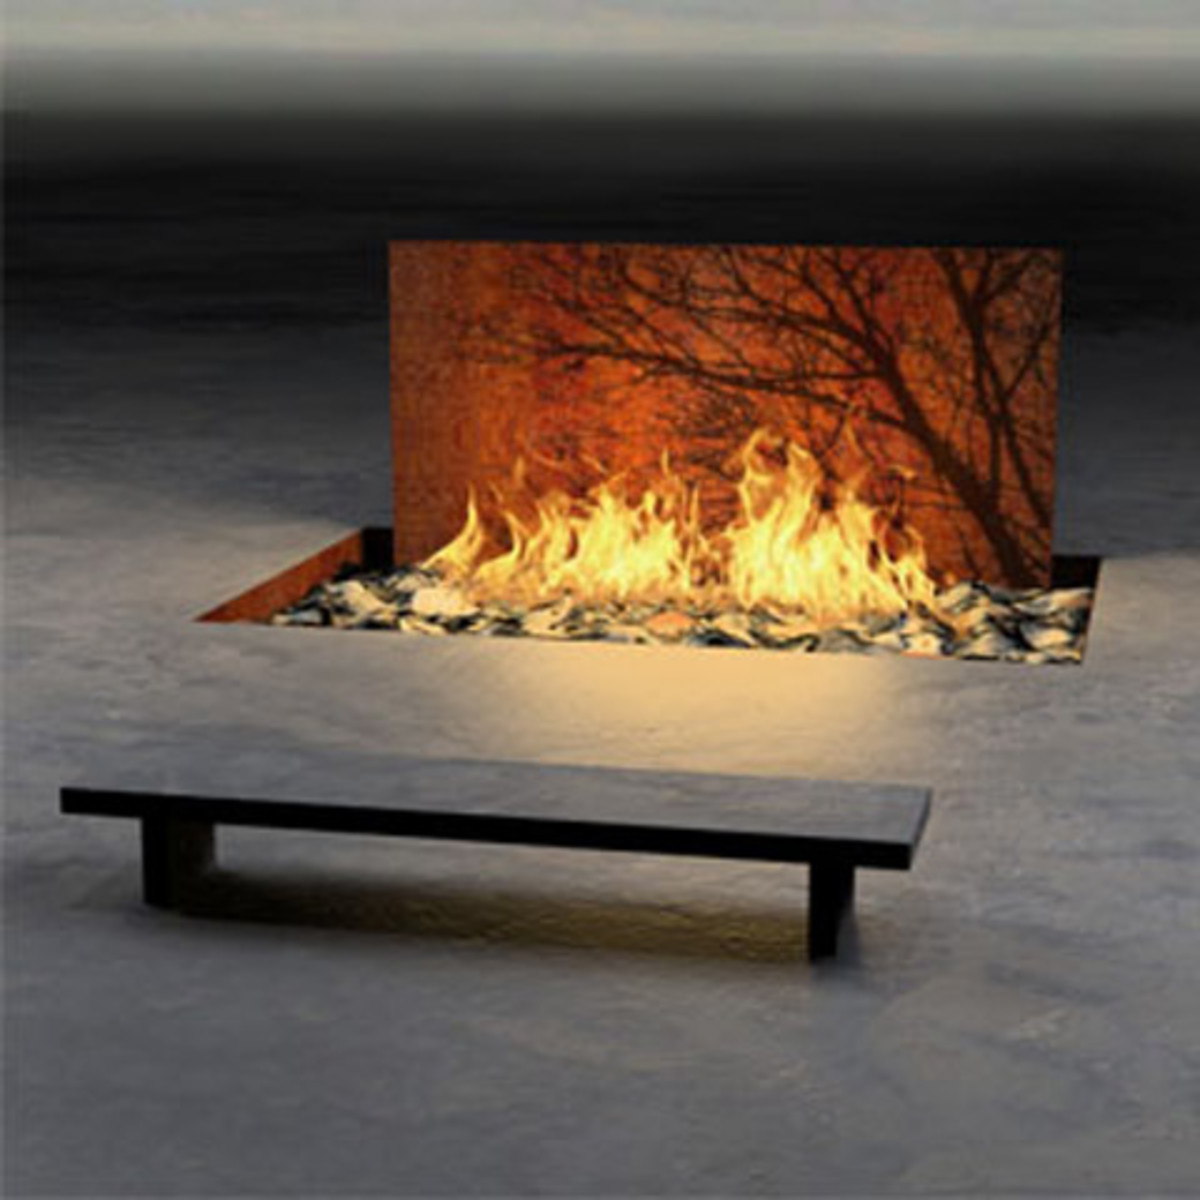 Sleek Art Backdrop Fireplaces